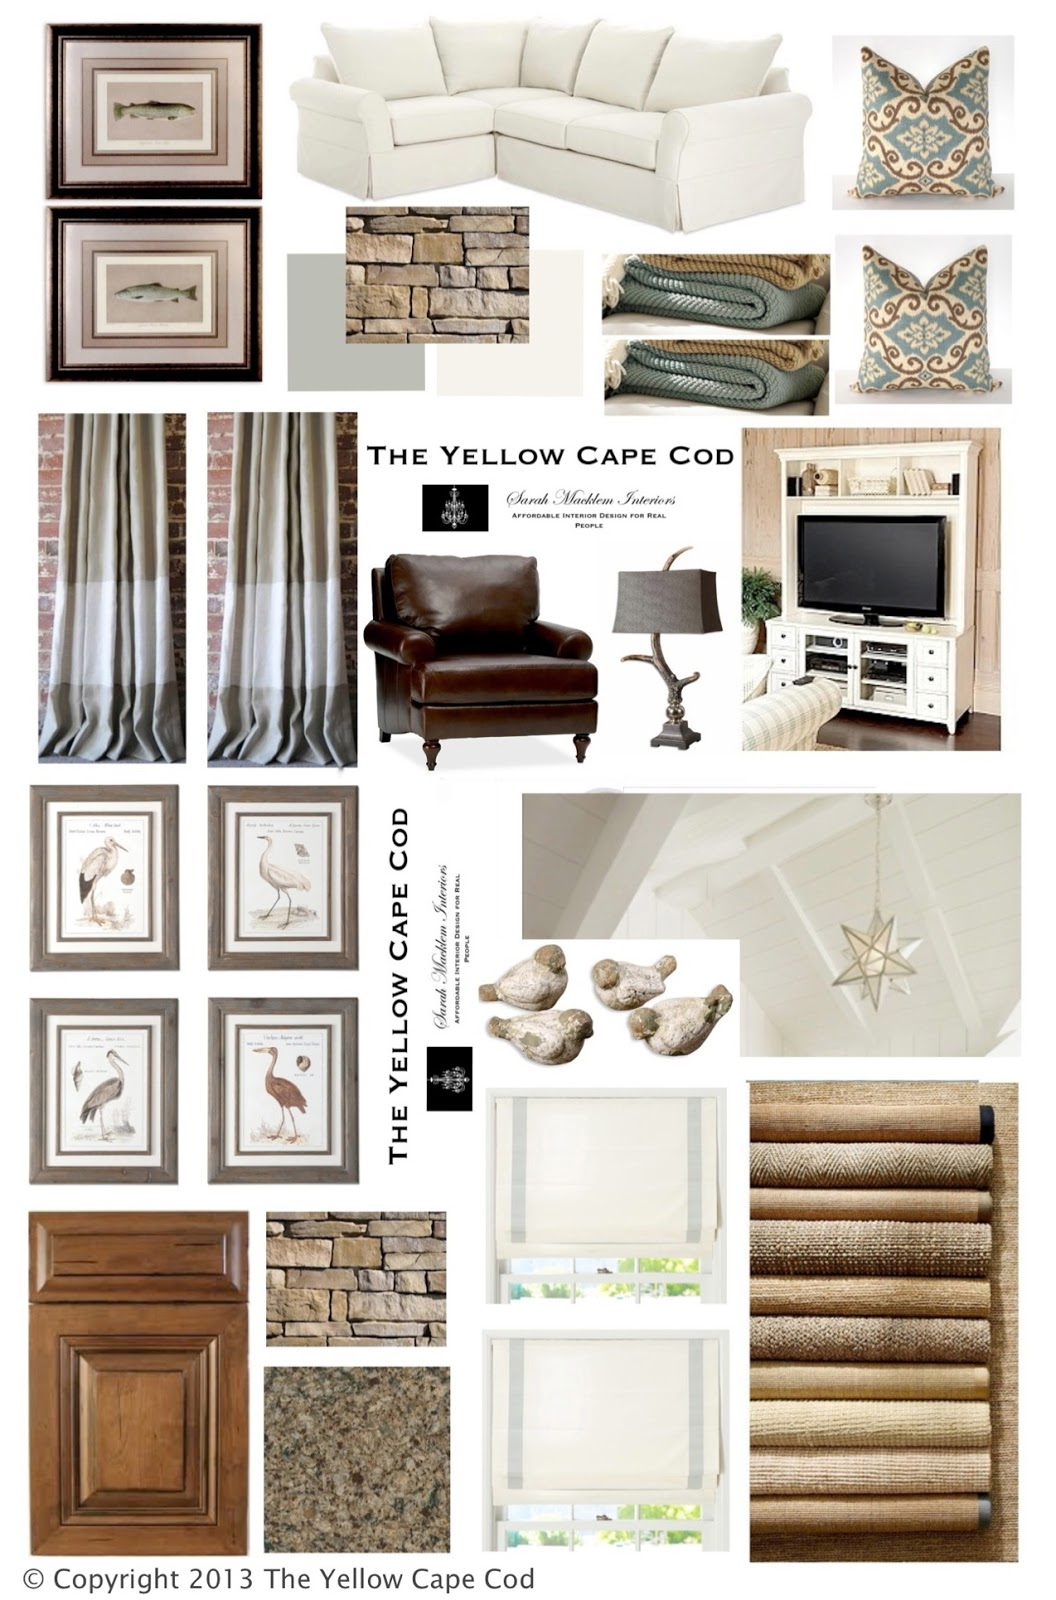 The Yellow Cape Cod Rustic Chic Nature Inspired Lake Cottage